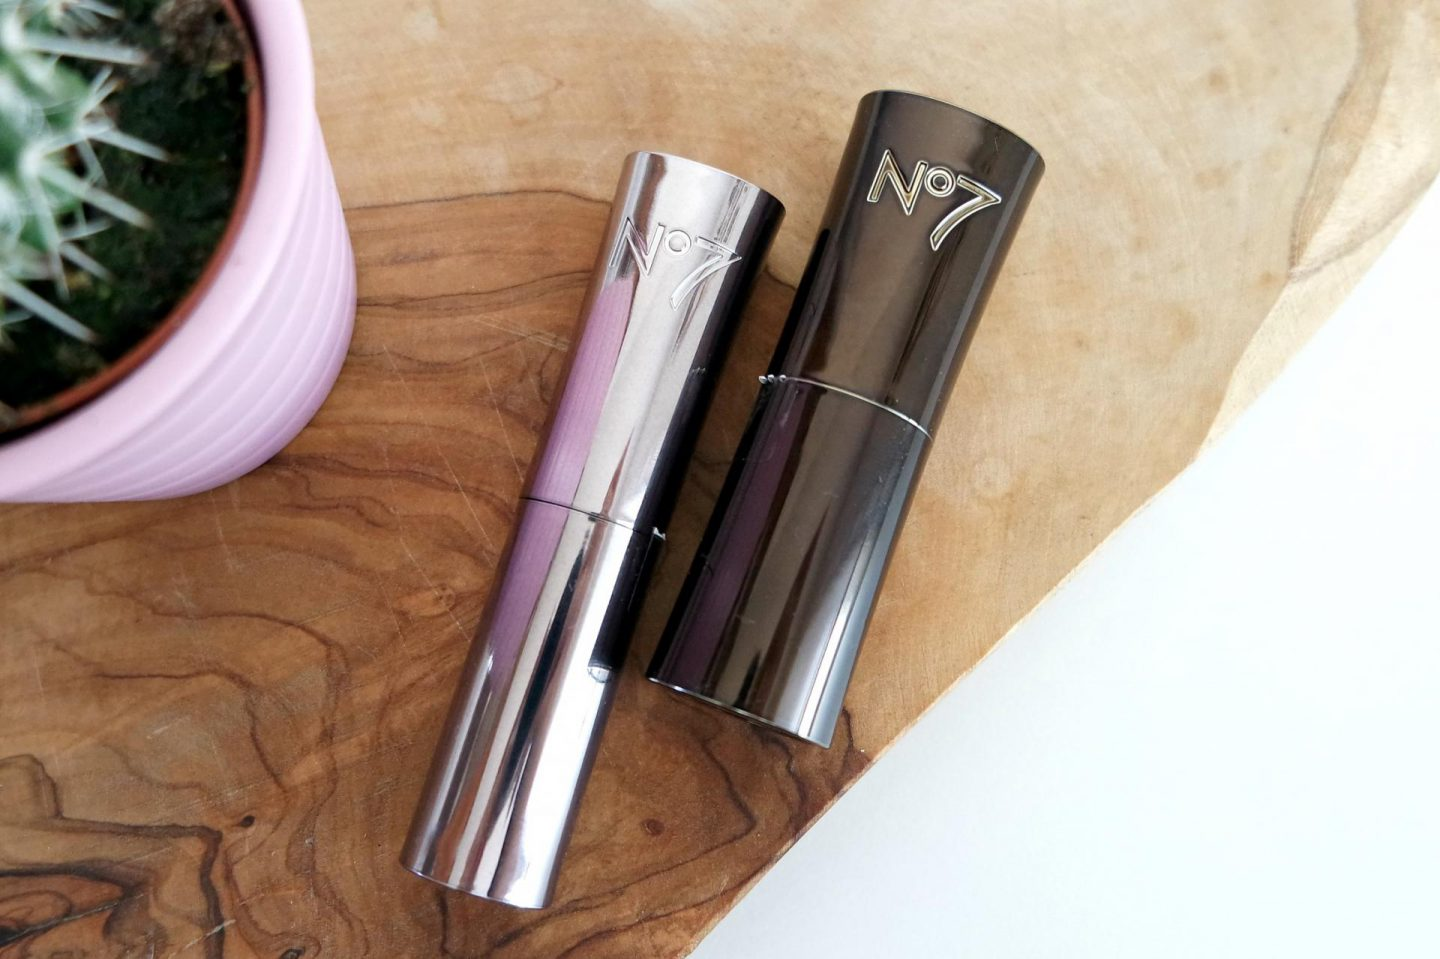 no7 de match made lipsticks